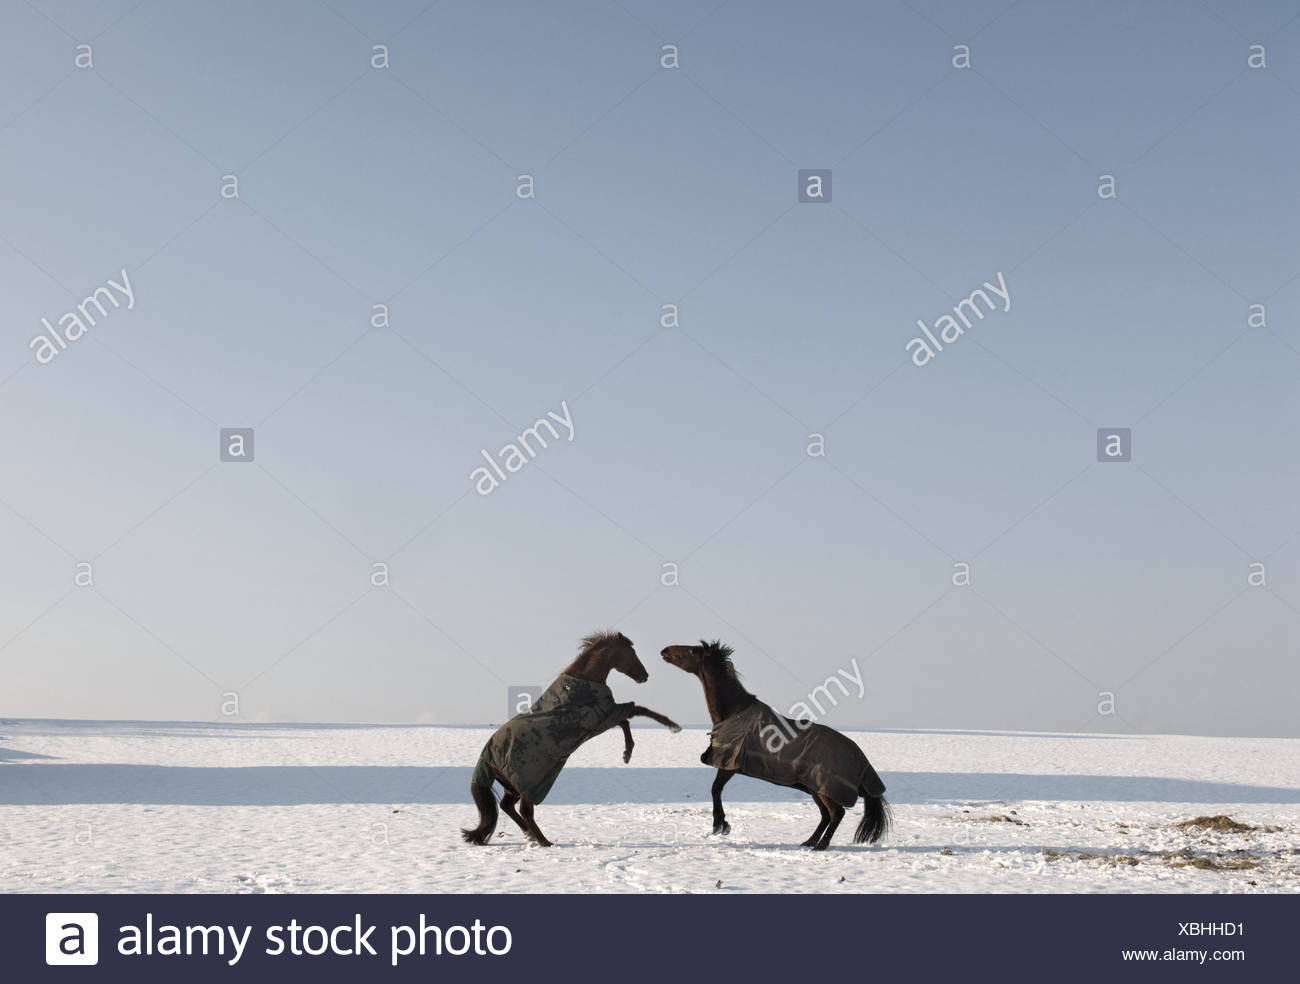 Two horses rearing in snow - Stock Image